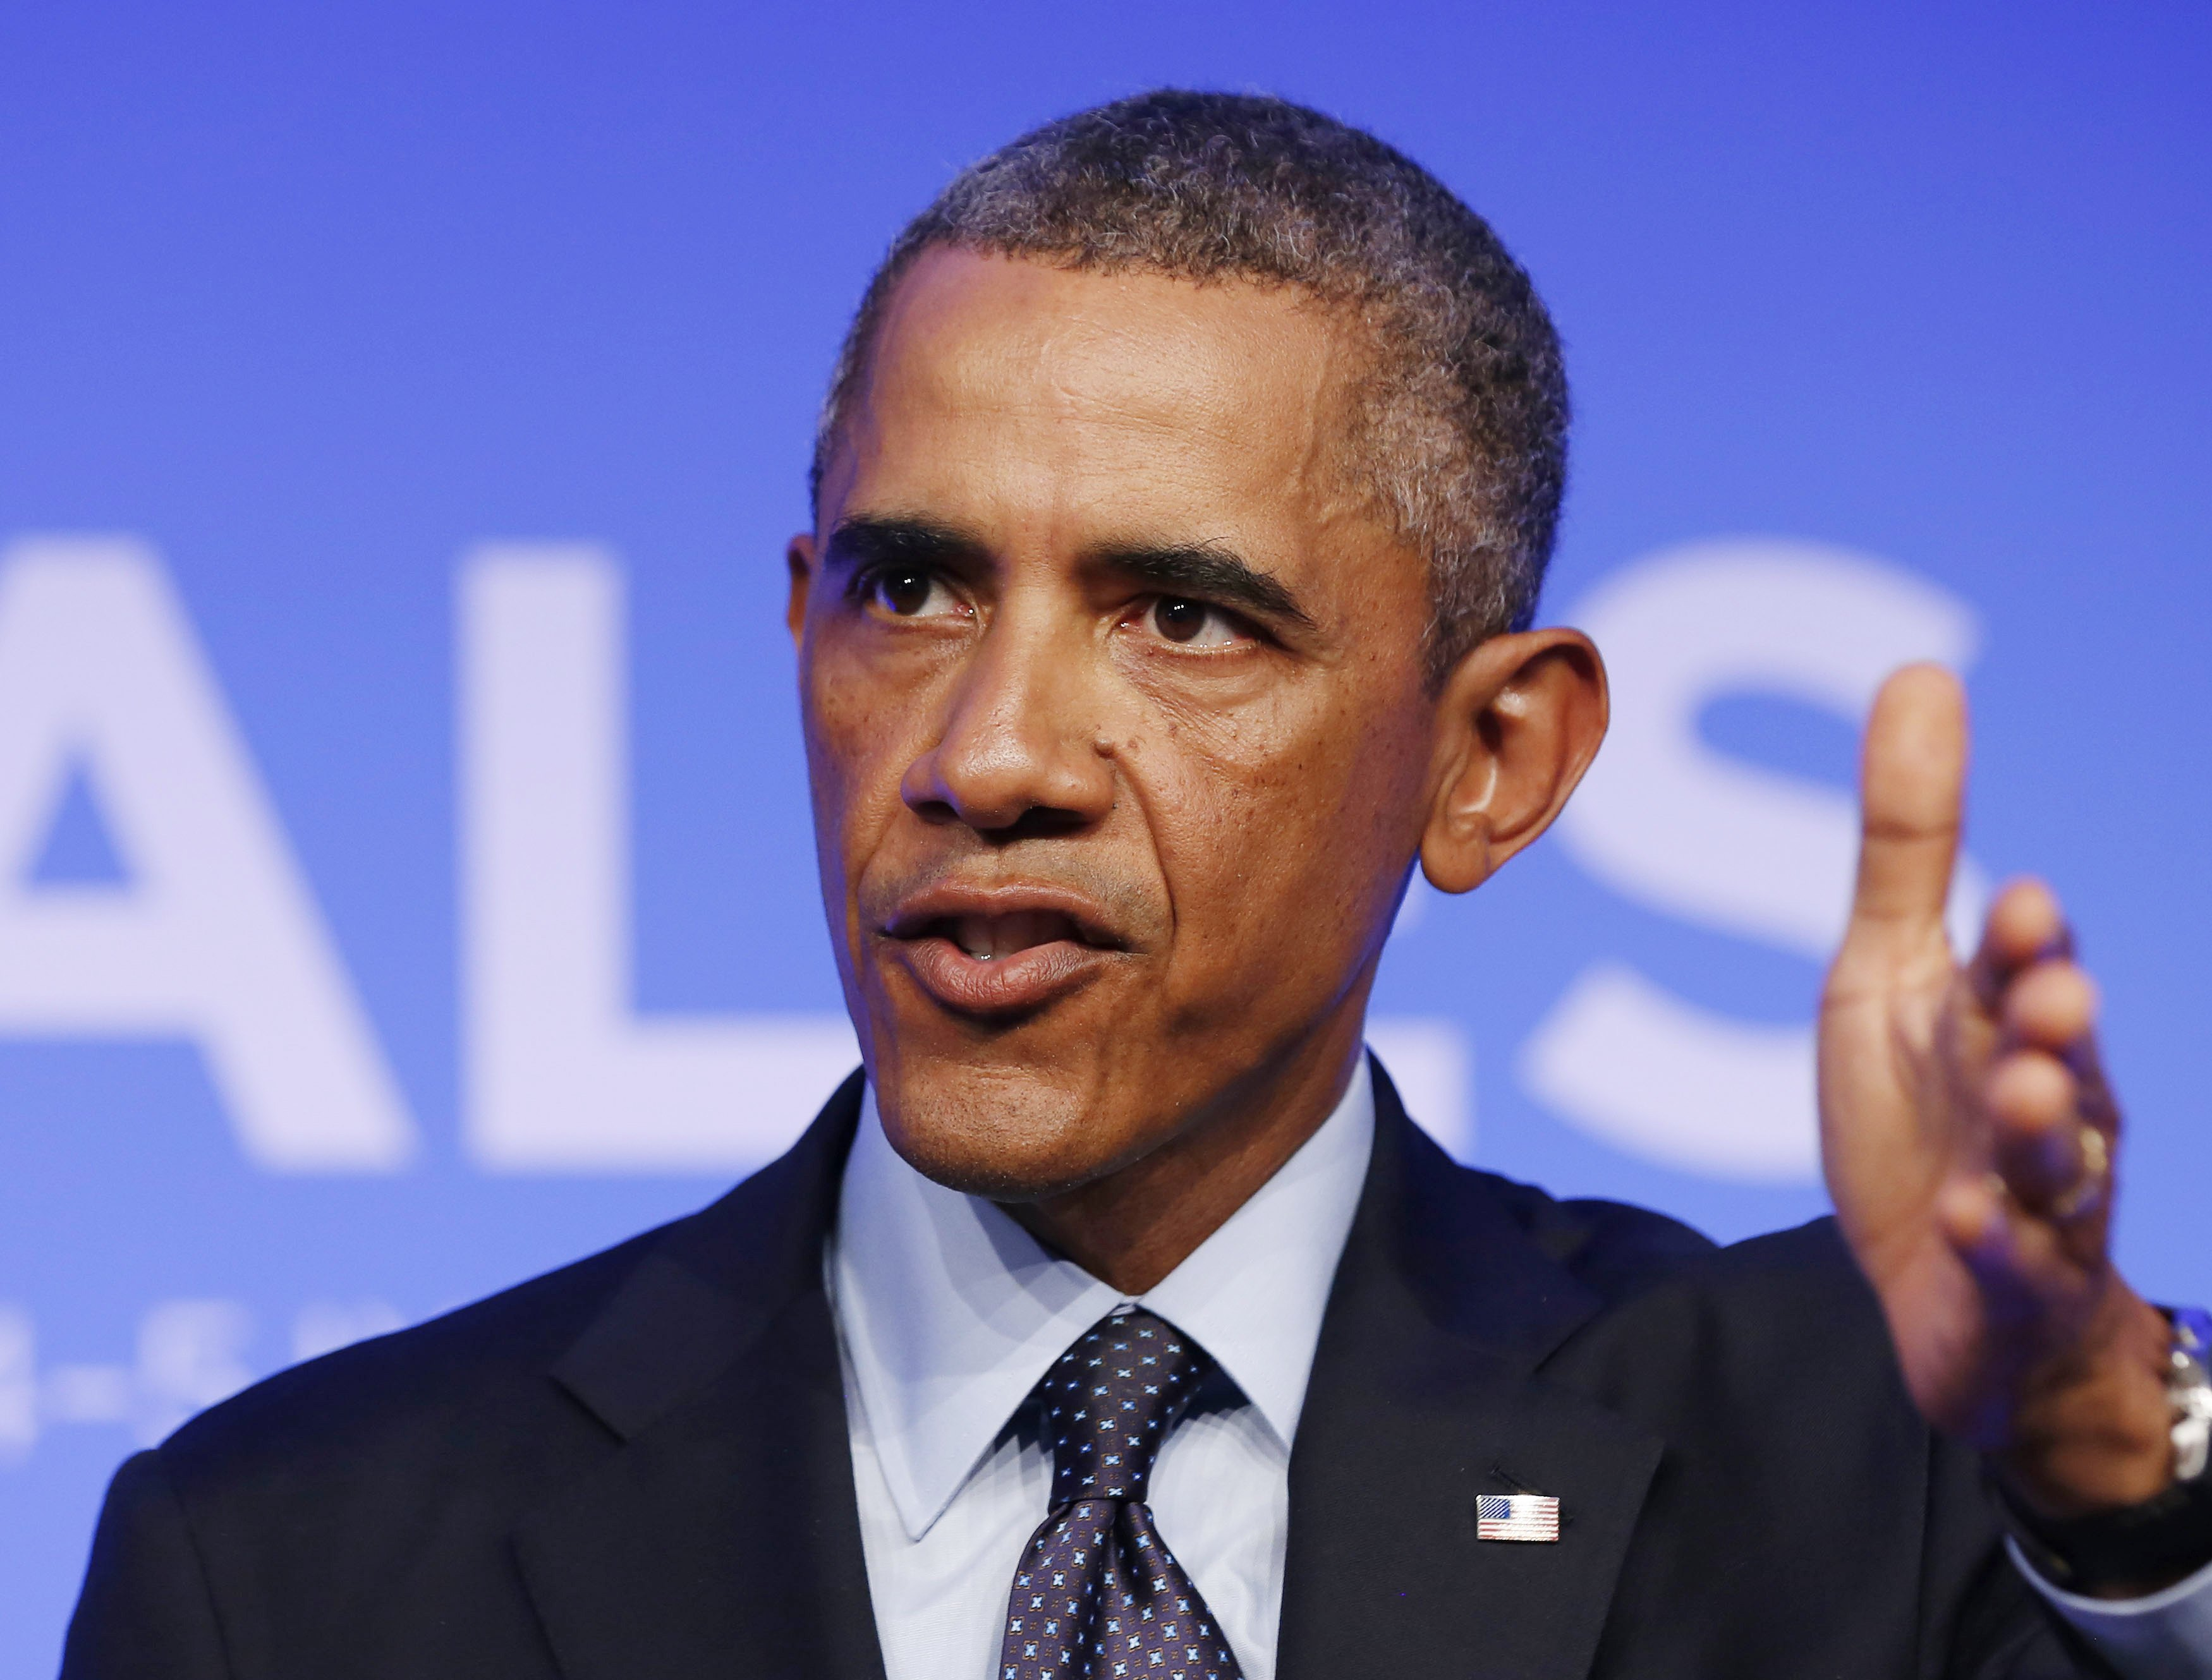 Obama sets meeting with U.S. Congress leaders amid concern over Iraq crisis